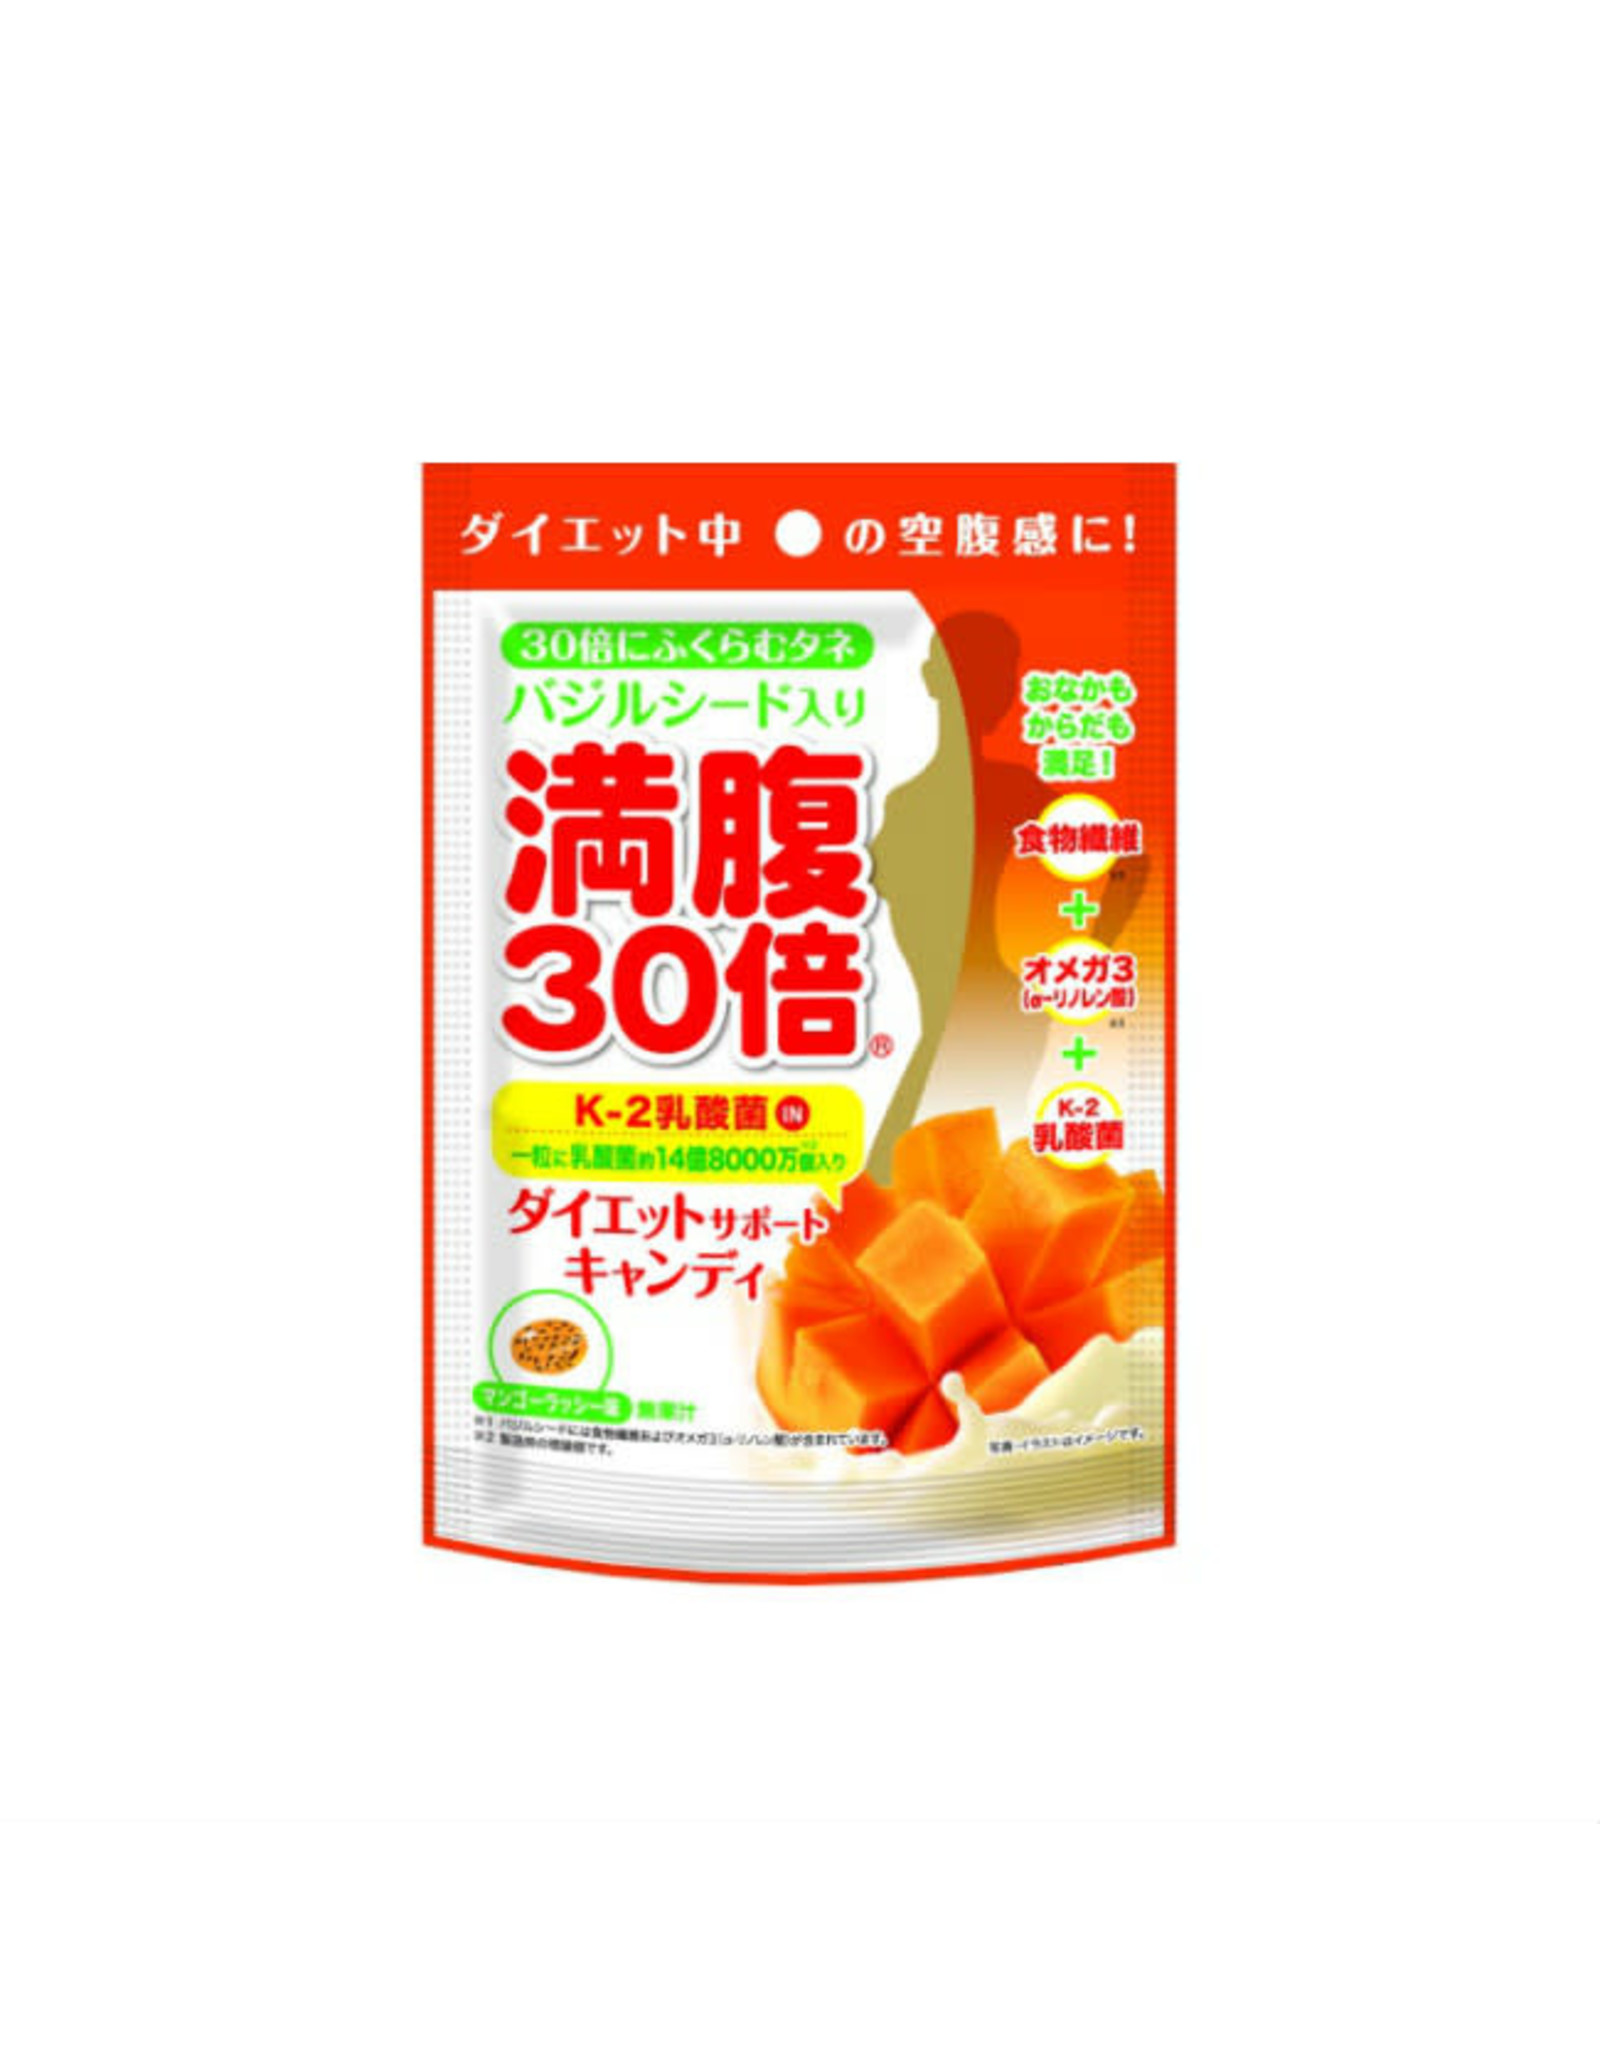 Graphico Fills You Up Diet Support Candy Mango Lassi